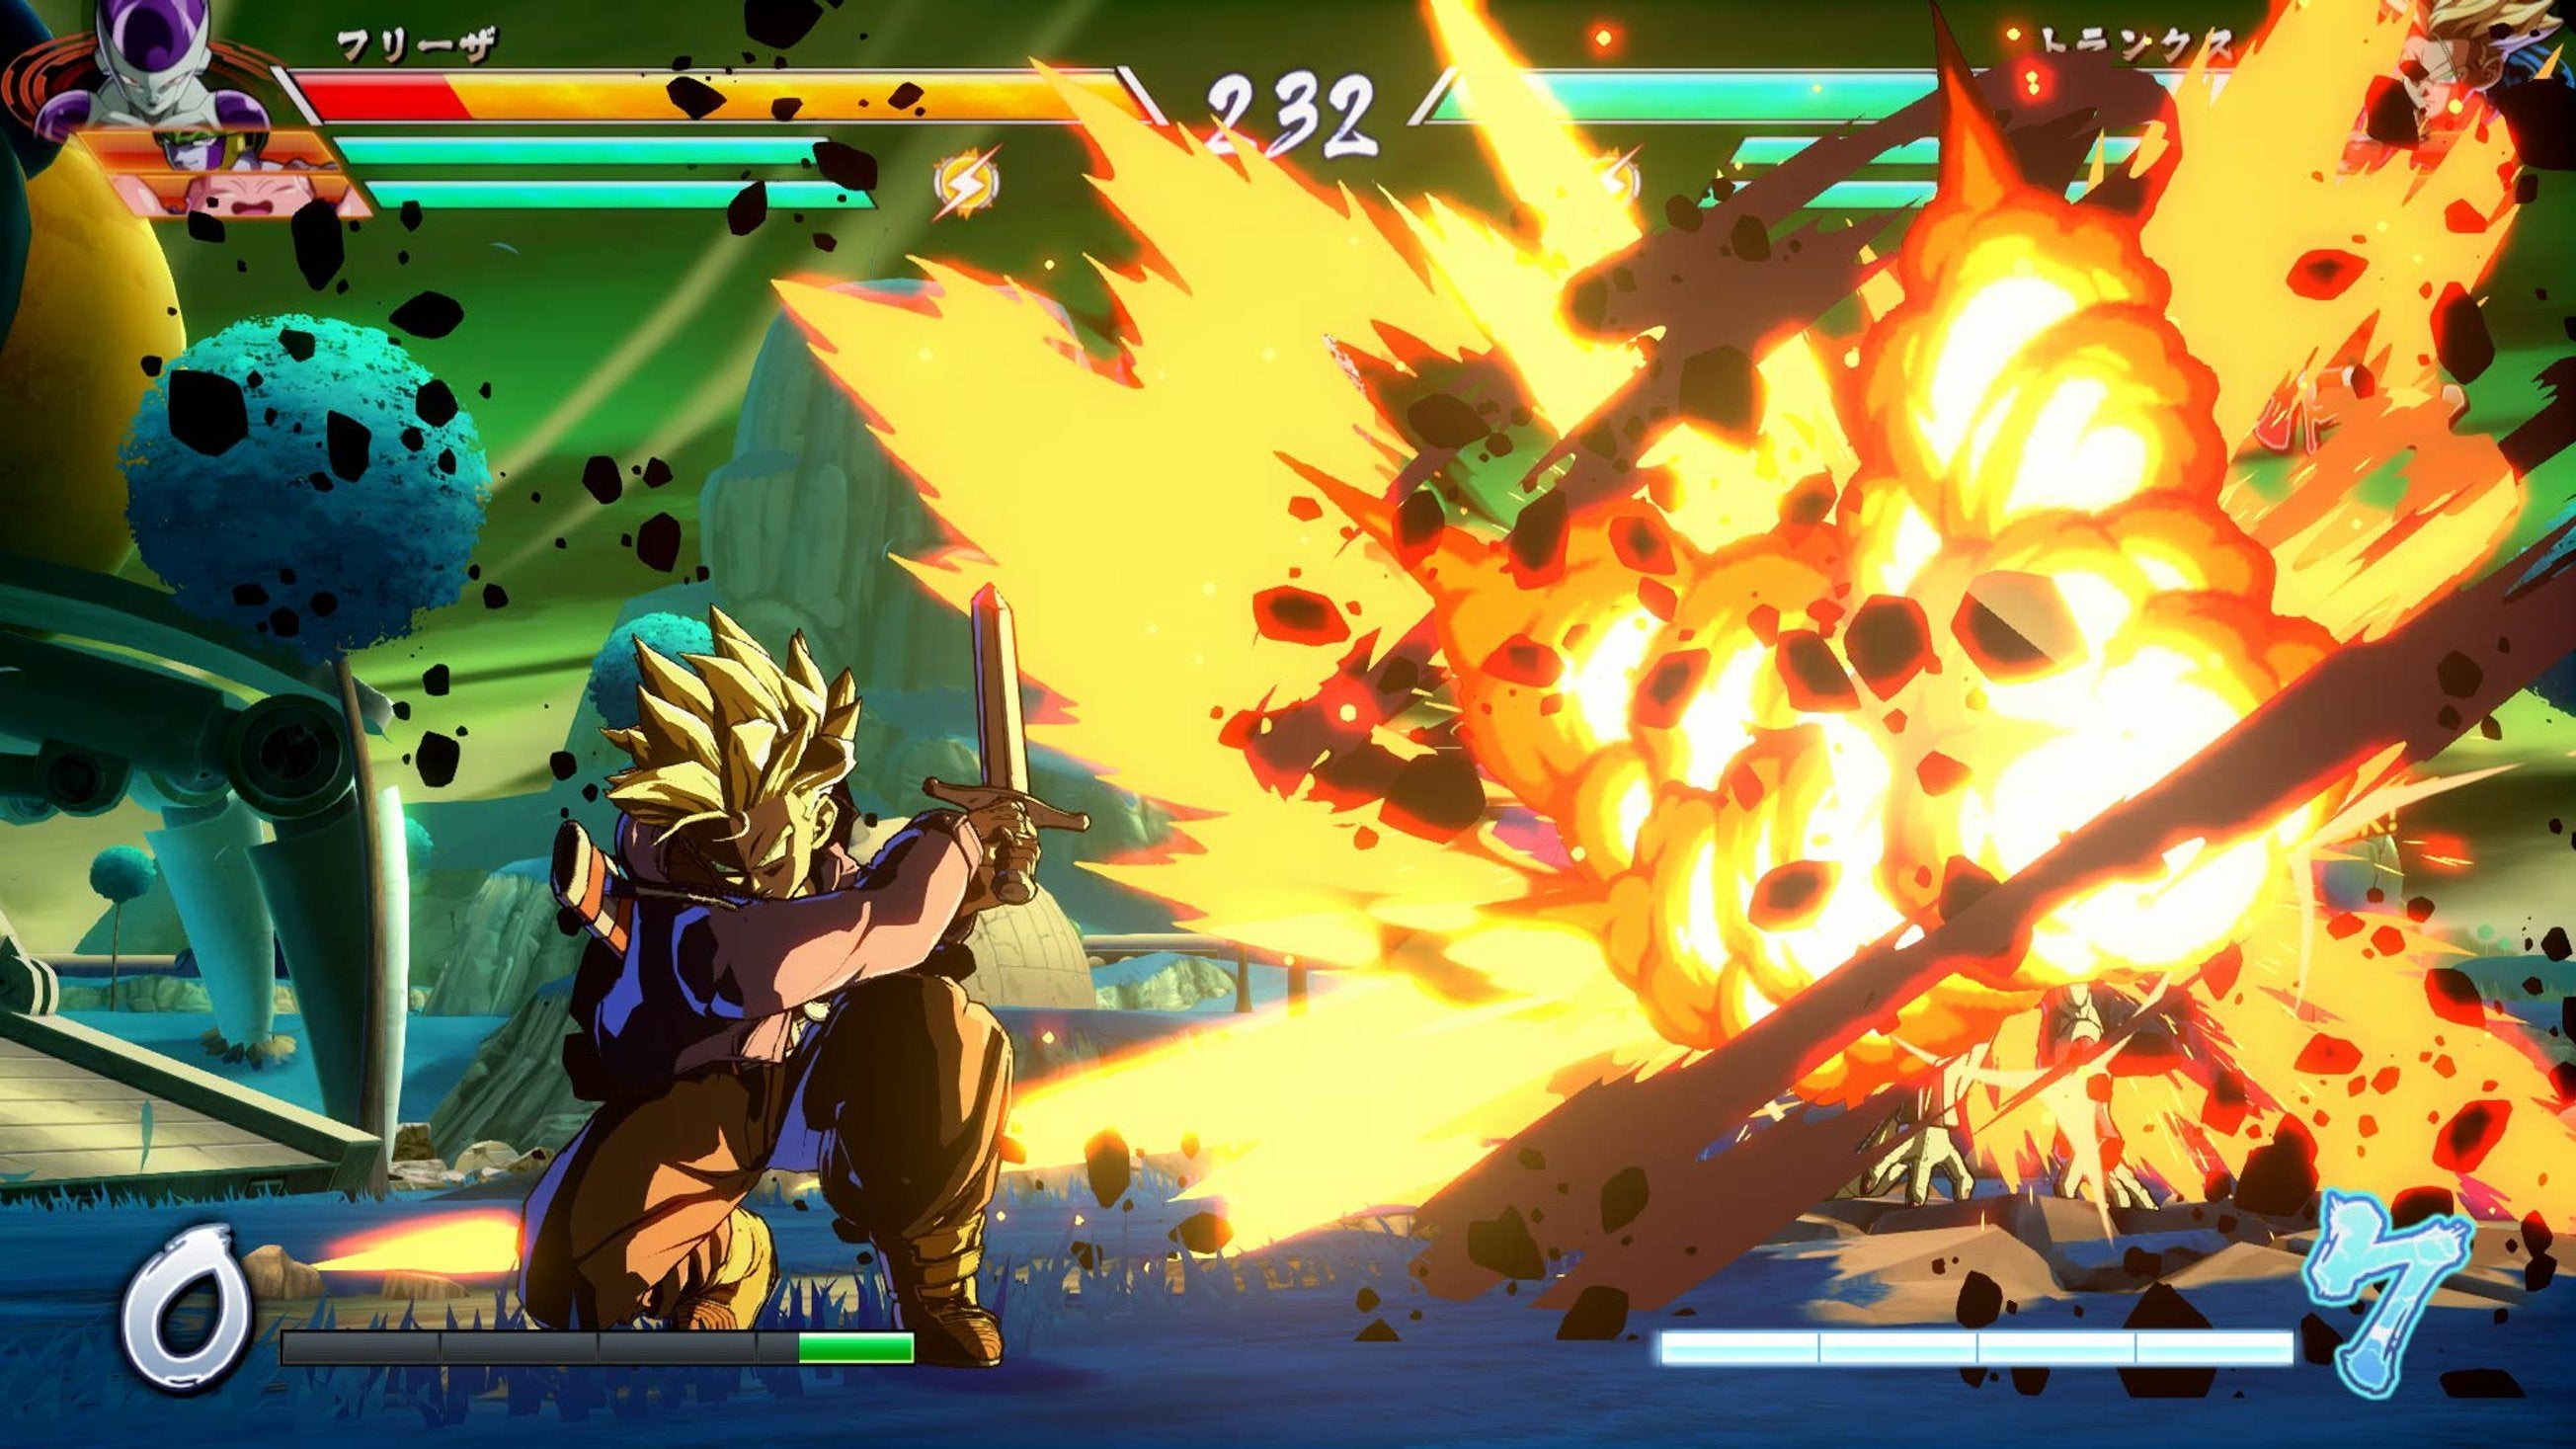 Favourites And Dark Horses To Watch At This Weekend's Dragon Ball FighterZ World Tour Finals